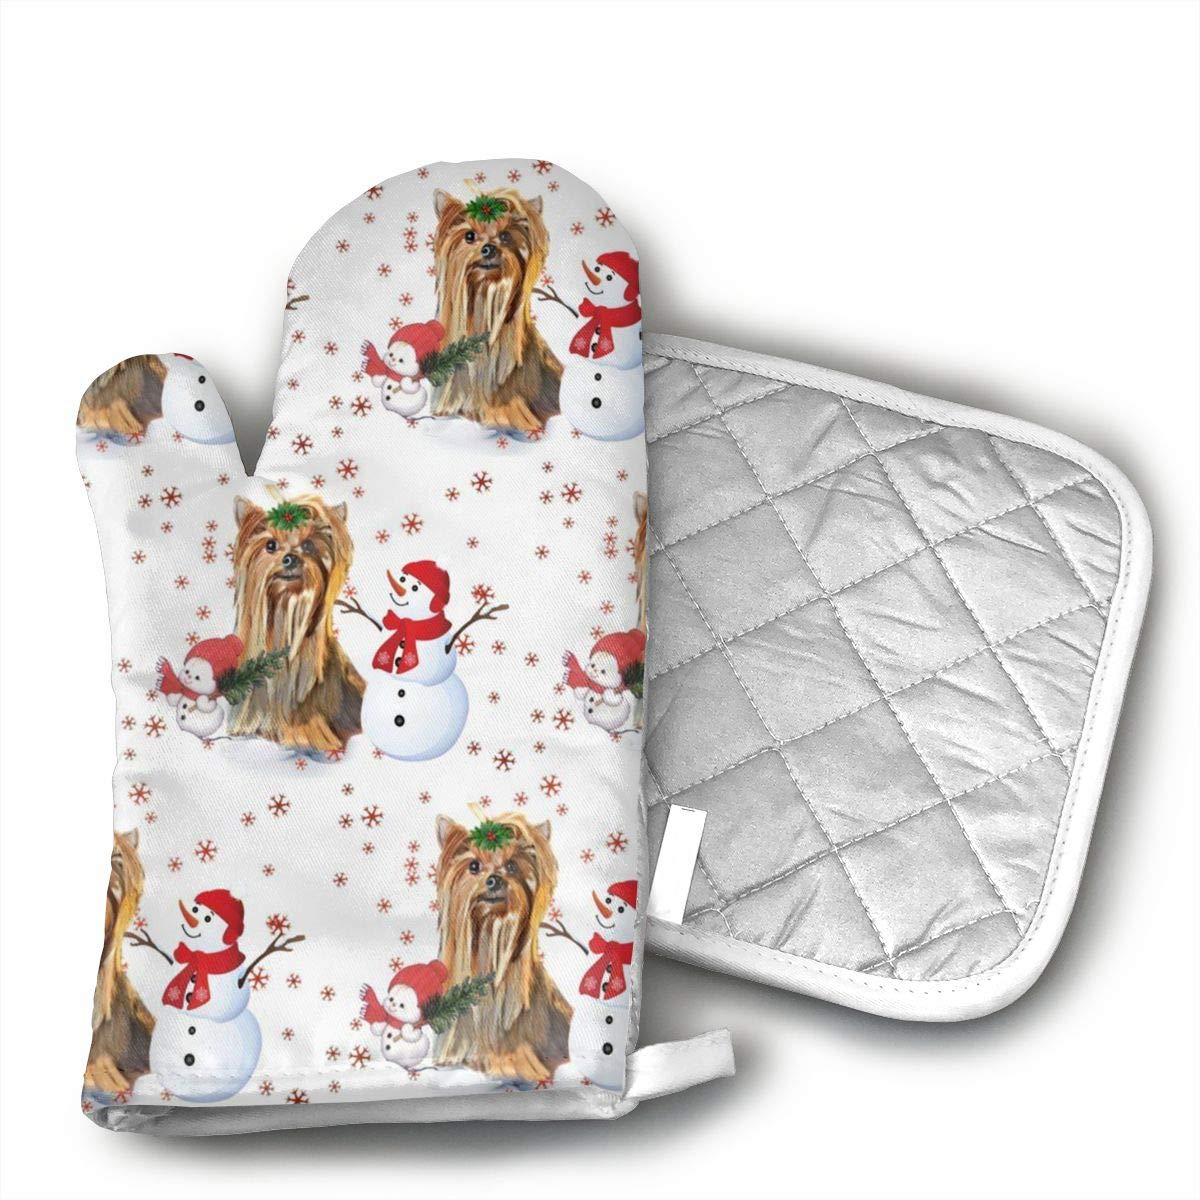 Sjiwqoj8 Yorkie and Snowman Kitchen Oven Mitts,Oven Mitts and Pot Holders,Heat Resistant with Quilted Cotton Lining,Cooking,Baking,Grilling,Barbecue